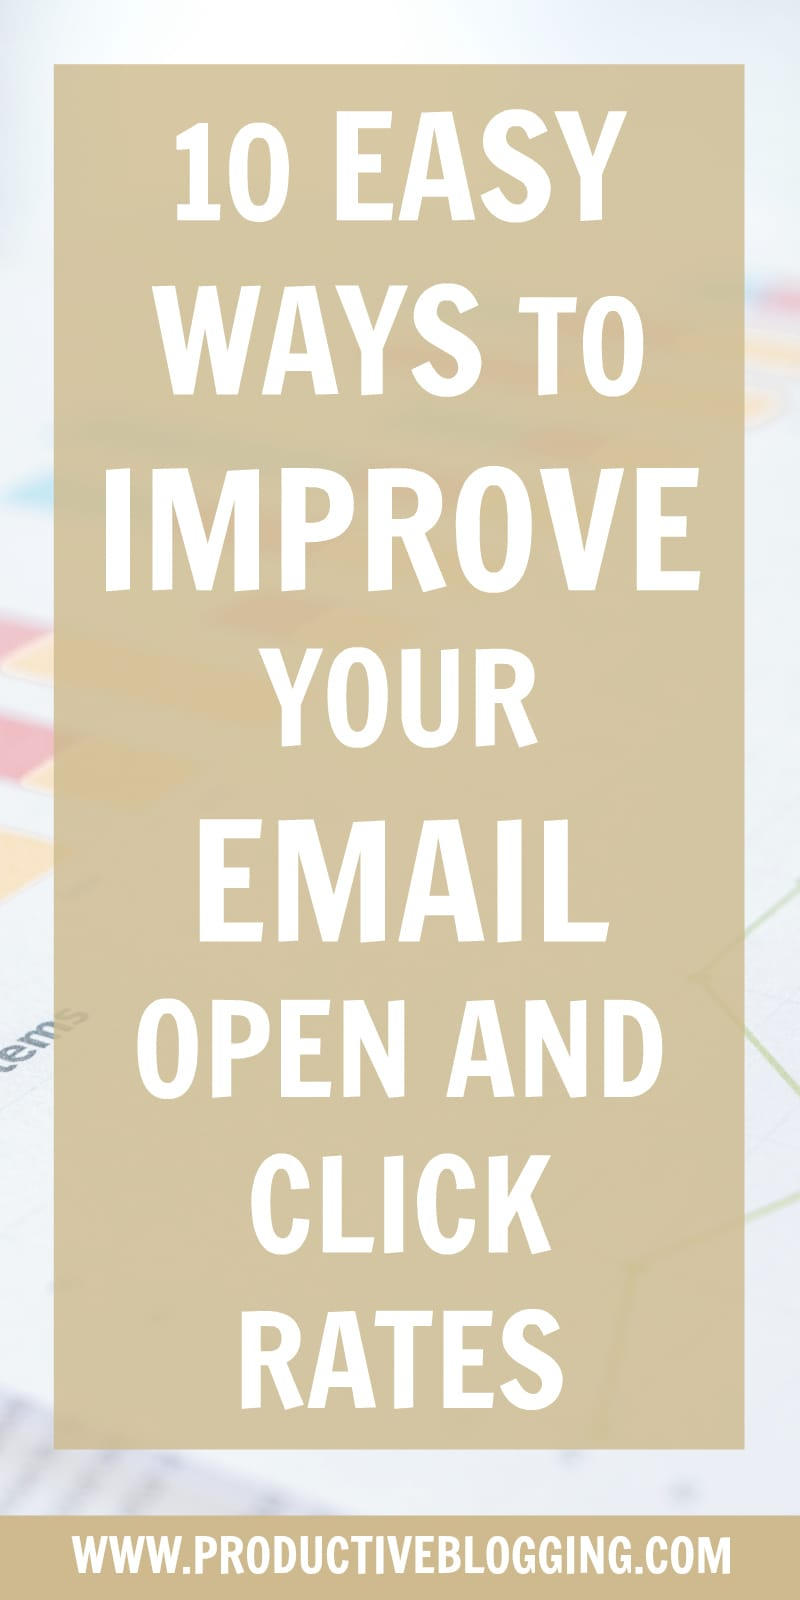 Having a large email list is great… but not if no one is opening your emails or clicking on your links. Here are 10 easy ways to improve your email open and click rates… #openrate #clickrate #clickthroughrate #emailmarketing #emaillist #emaillistgrowth #growyouremaillist #emailmarketingtips #listbuilding #subscribers #mailchimp #convertkit #mailerlite #blogging #bloggers #bloggingtips #growyourblog #bloggrowth #productivity #productivitytips #productiveblogging #blogsmarternotharder